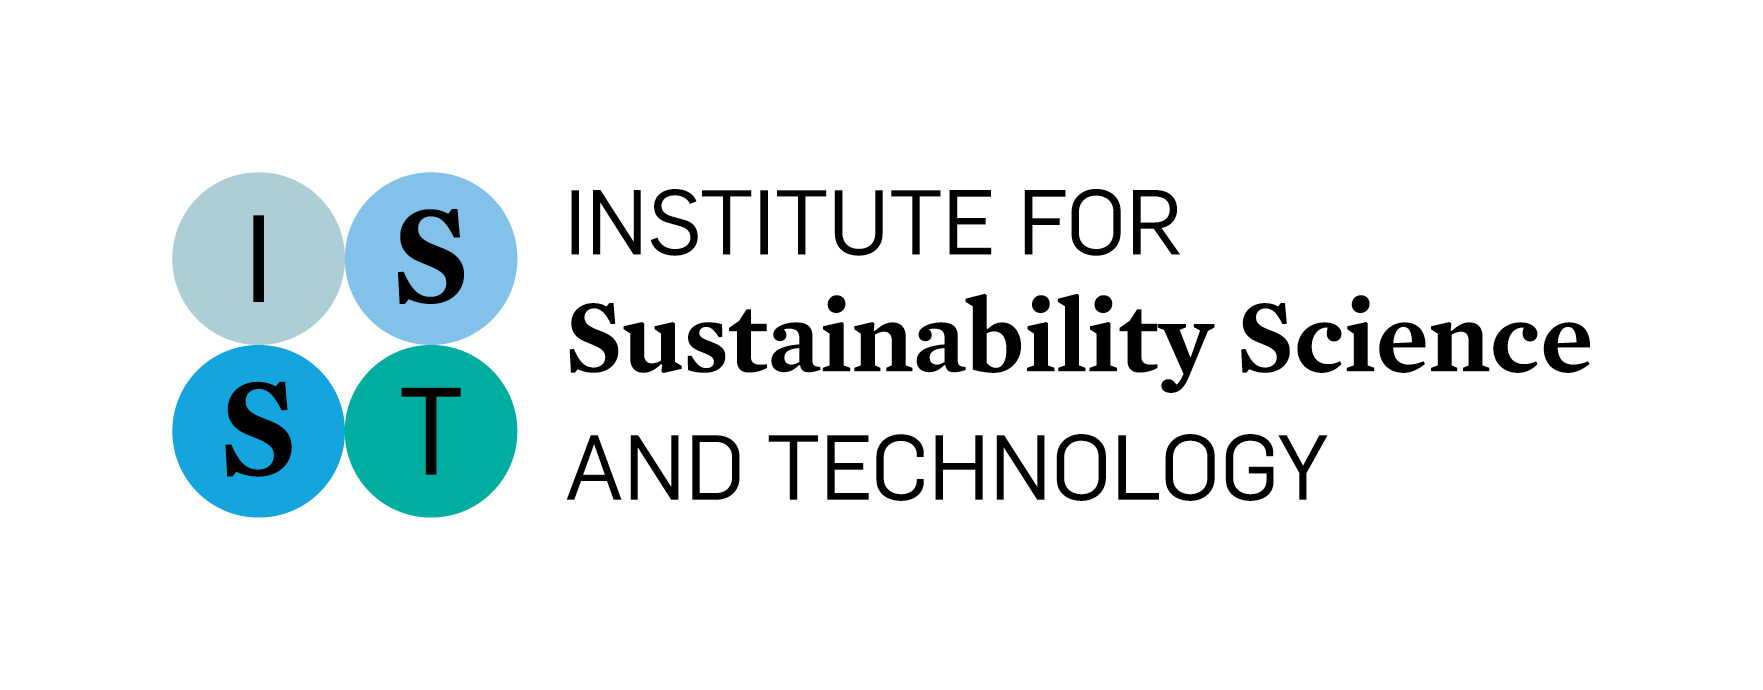 Institute for Sustainability Science and Technology, (open link in a new window)